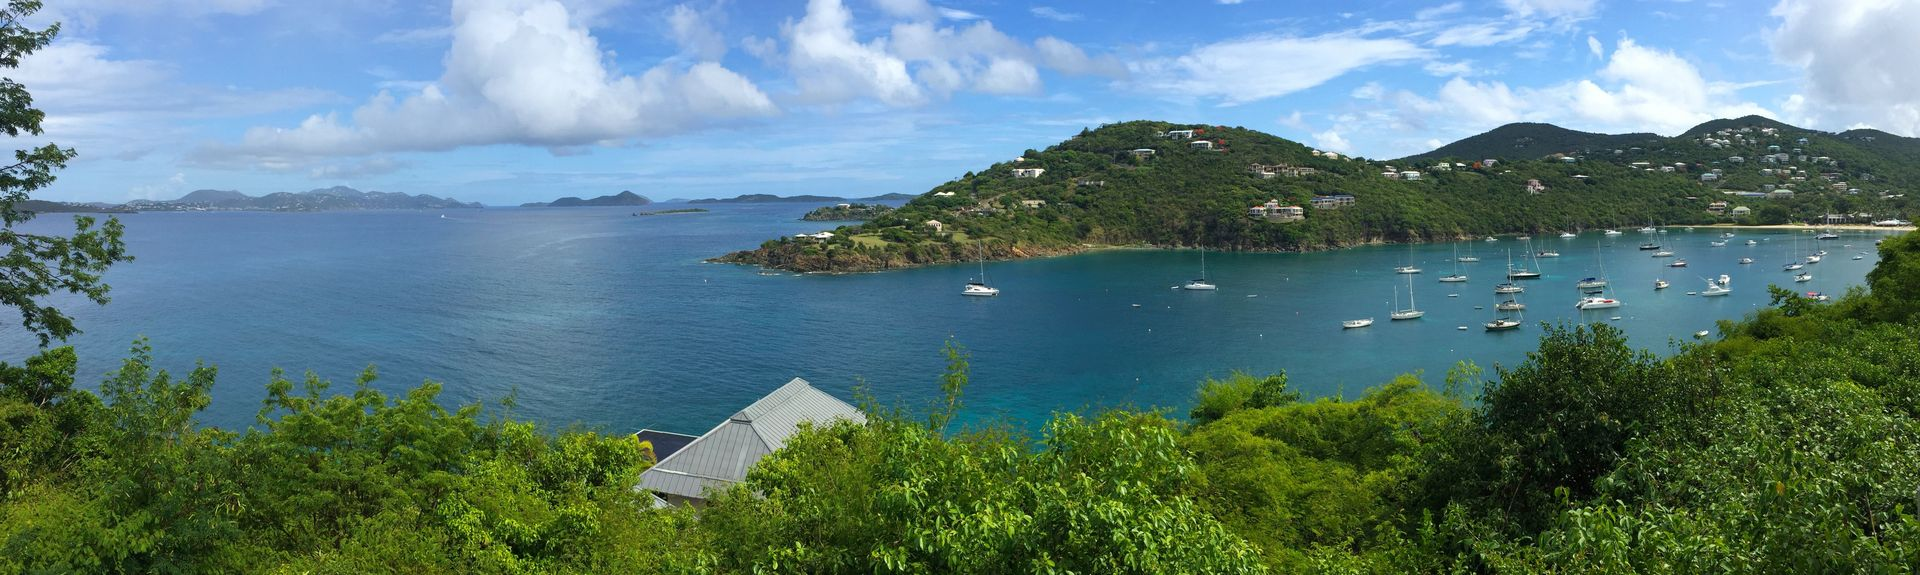 Great Cruz Bay, St. John, U.S. Virgin Islands